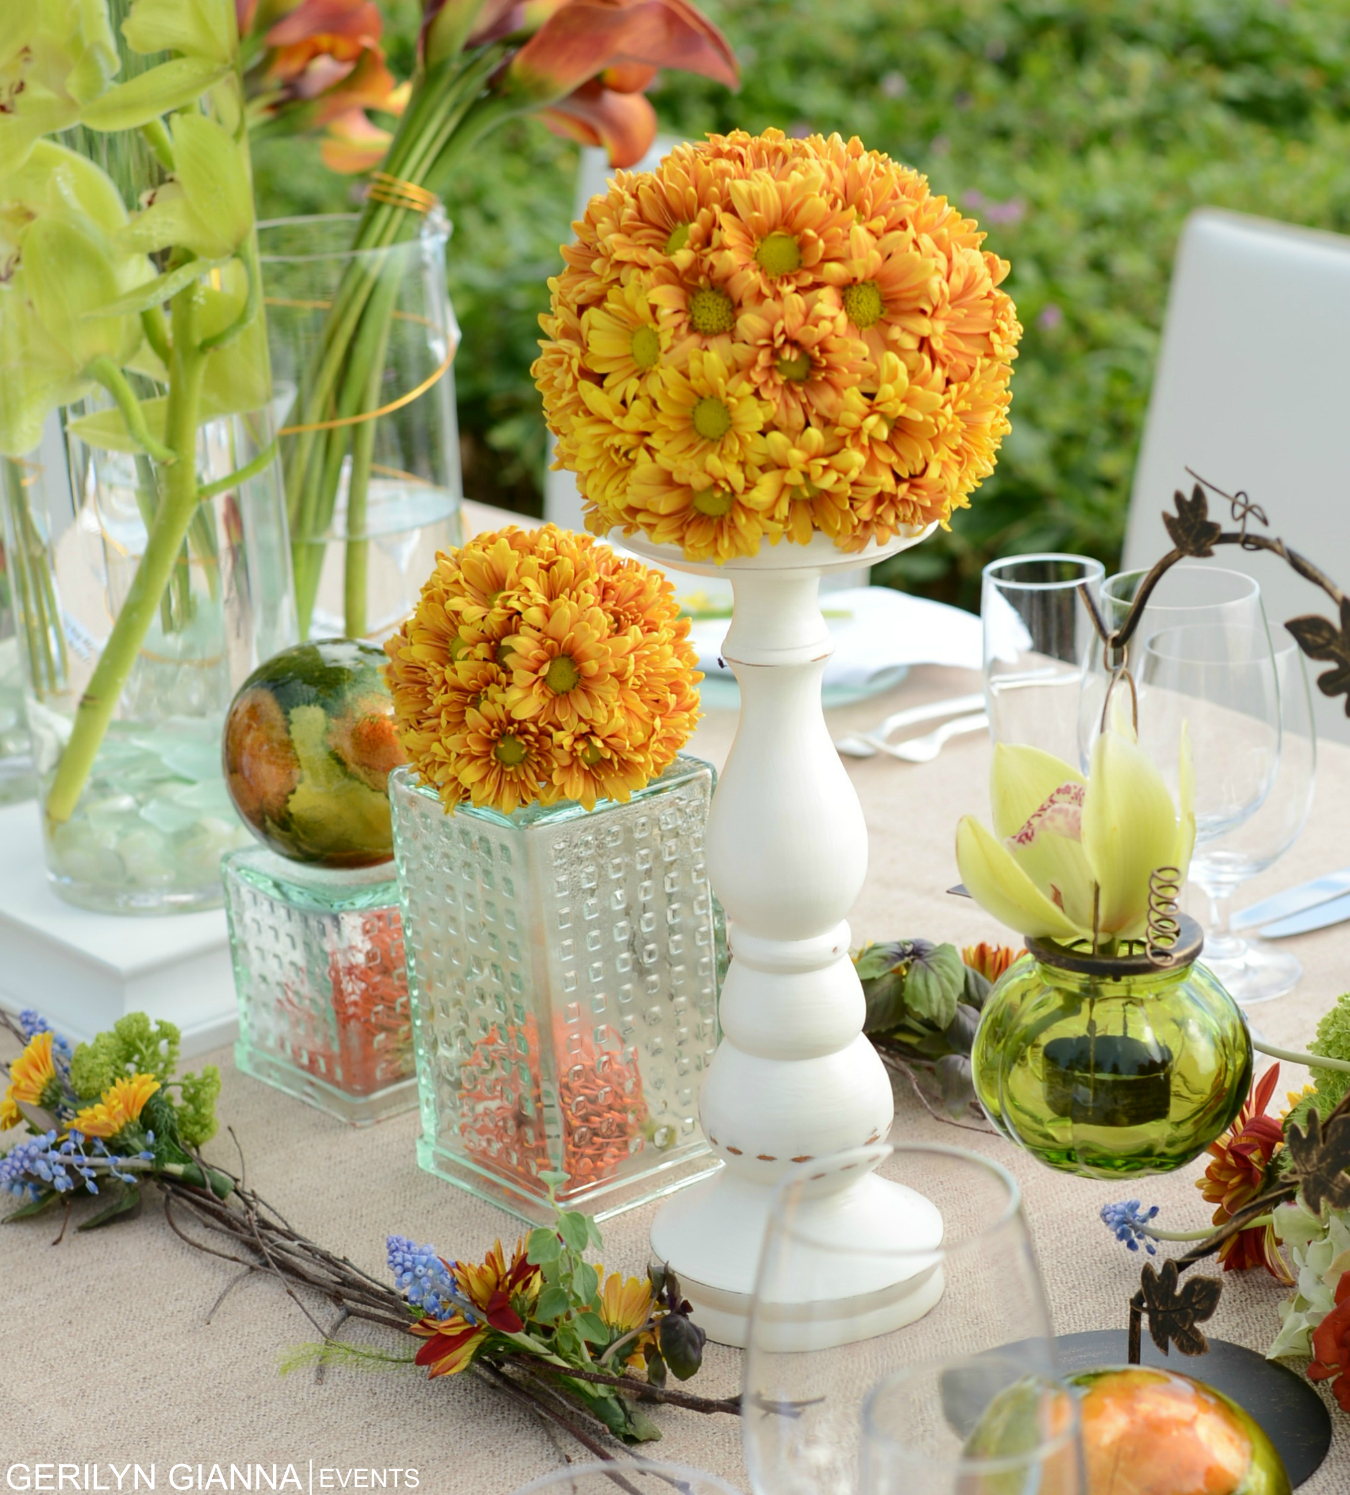 Fresh Floral Art | Gerilyn Gianna Event and Floral Design